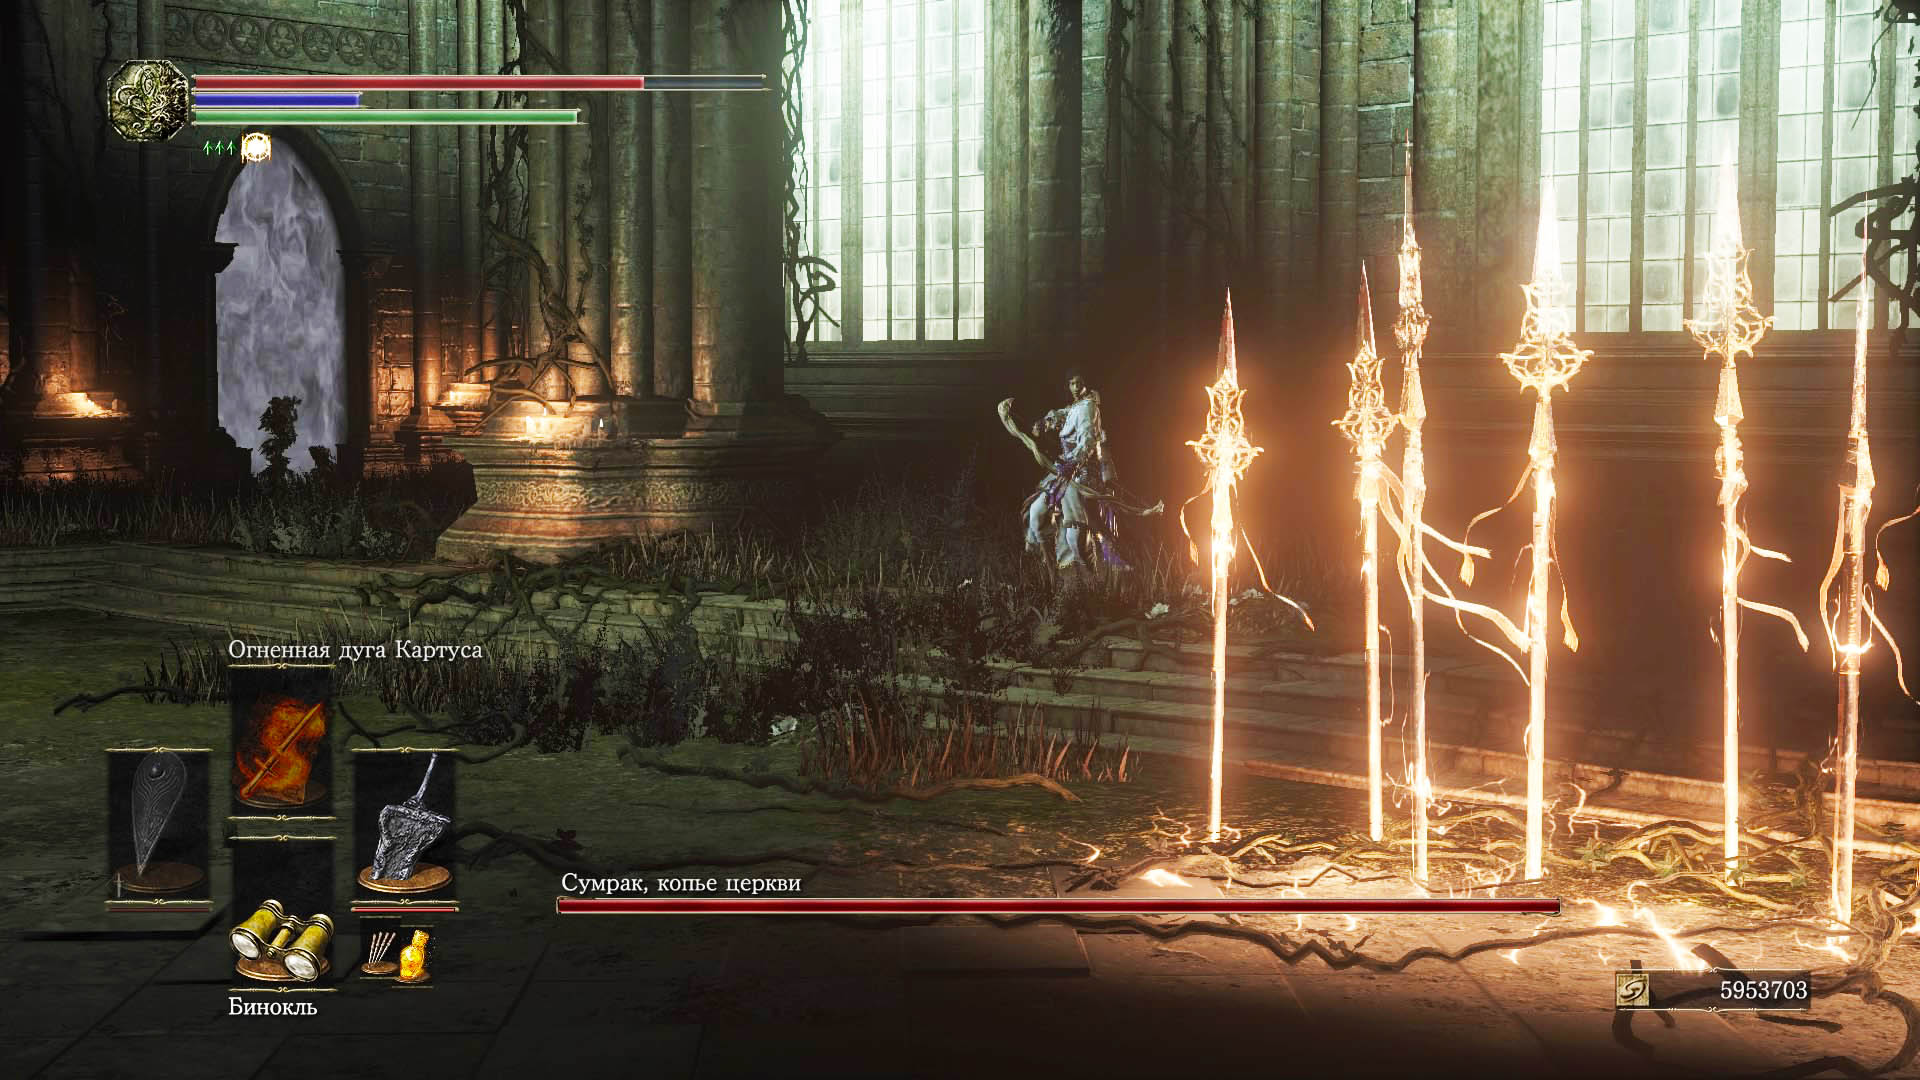 Dark Souls III: The Ringed City Сумрак, копьё церкви (Halflight, Spear of the Church)